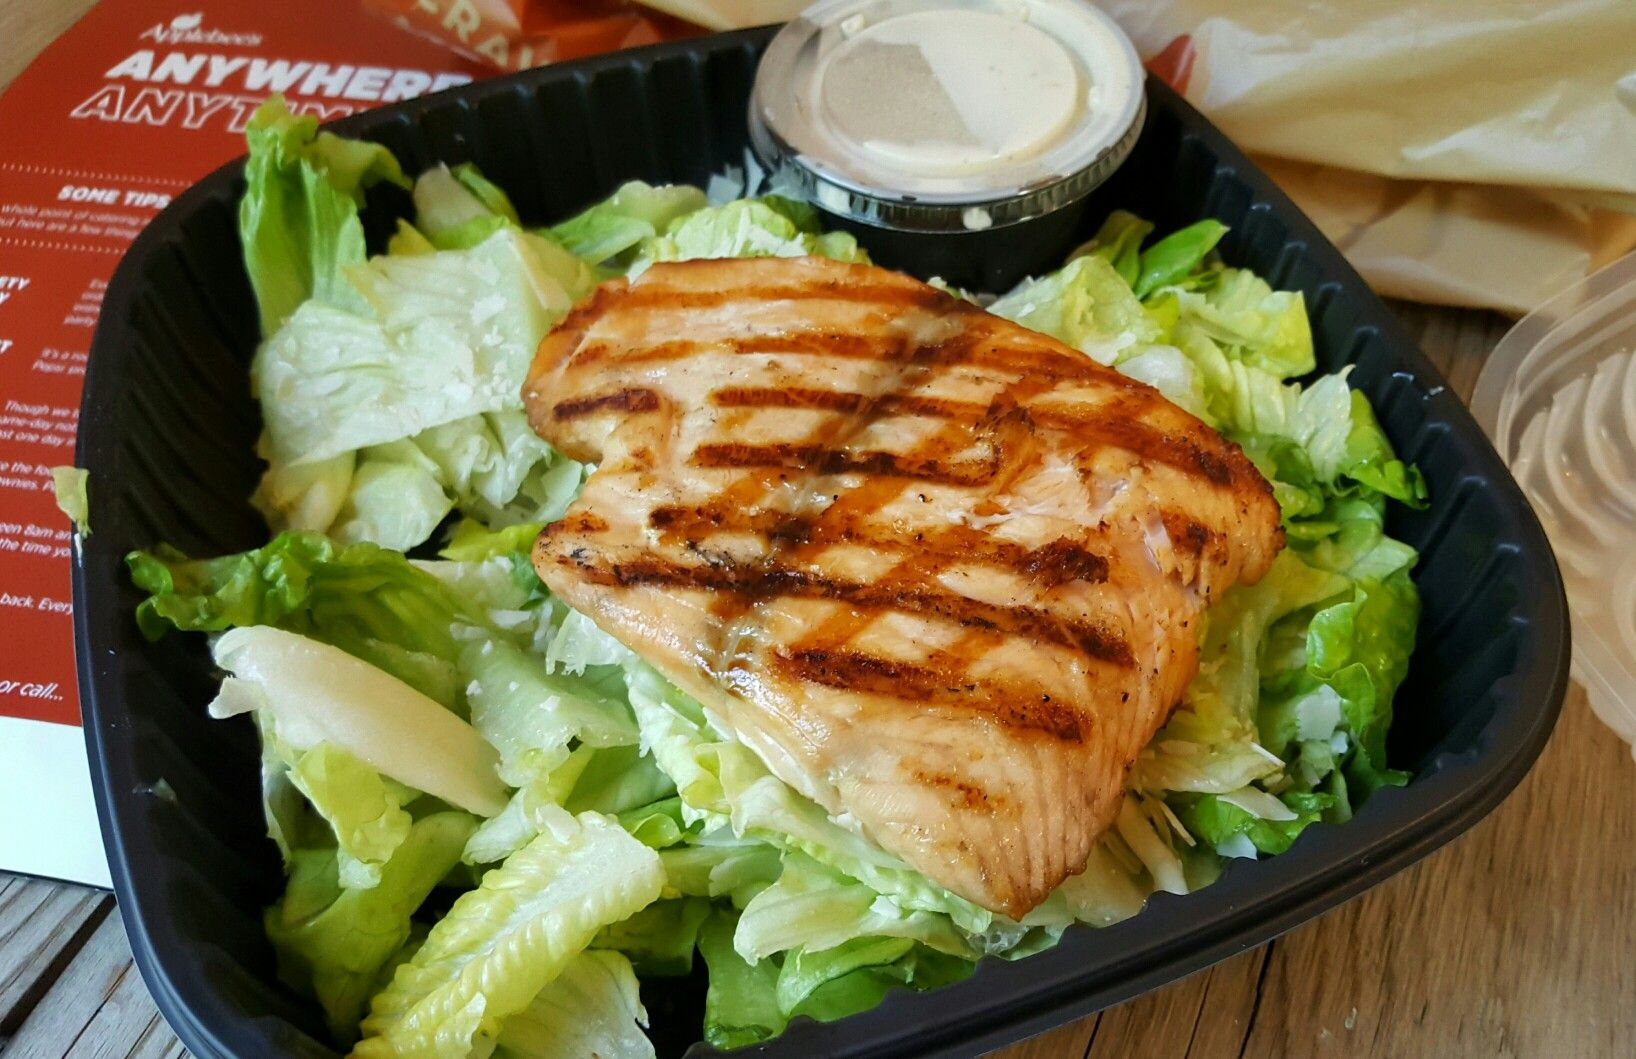 Delicious low carb takeout for dinner from Applebee's